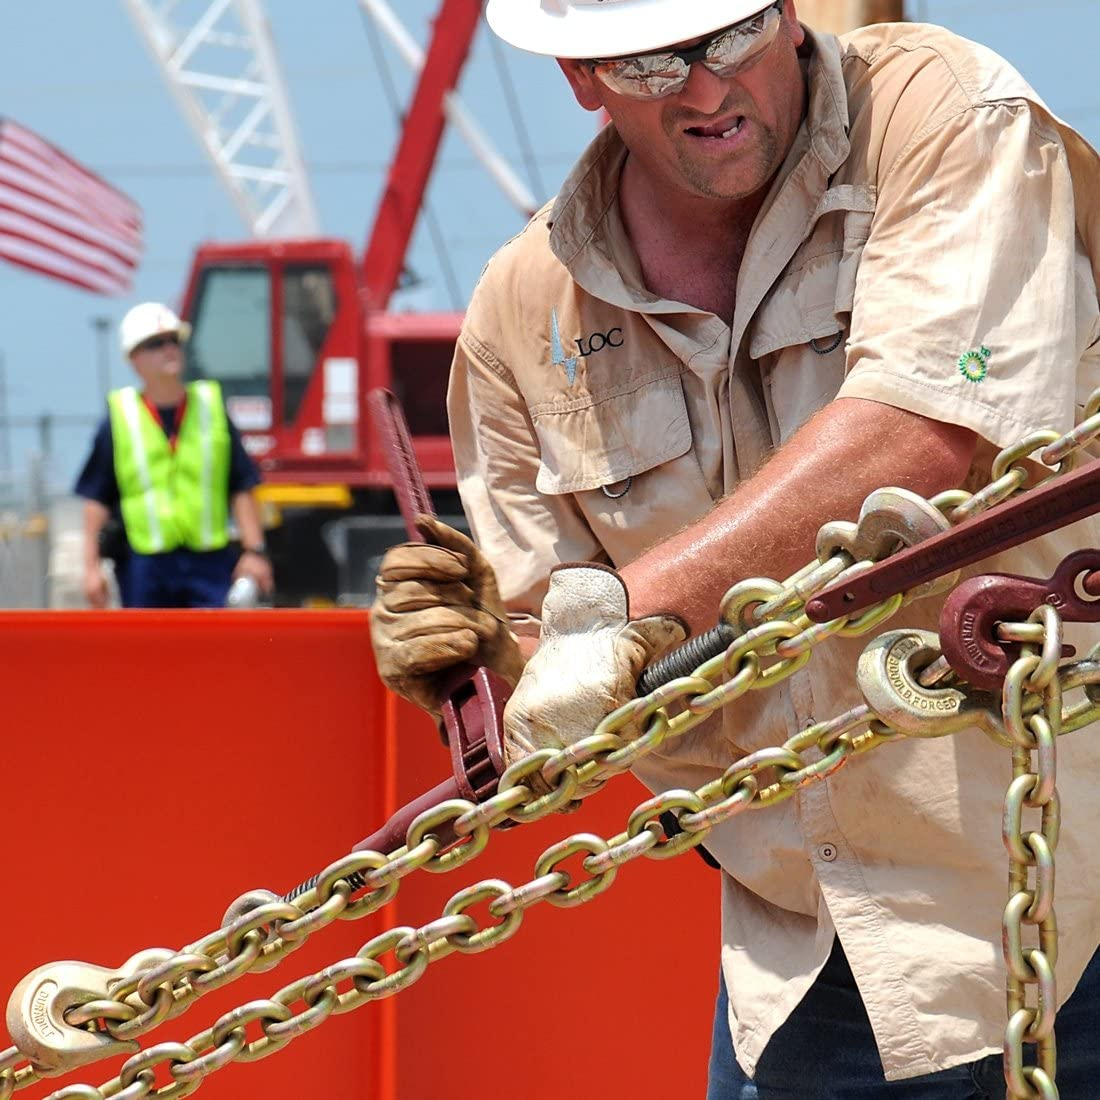 3//8 Inch x 25 Foot 6,600 Pound Safe Working Load VULCAN Grade 70 Binder Chain with Clevis Grab Hooks